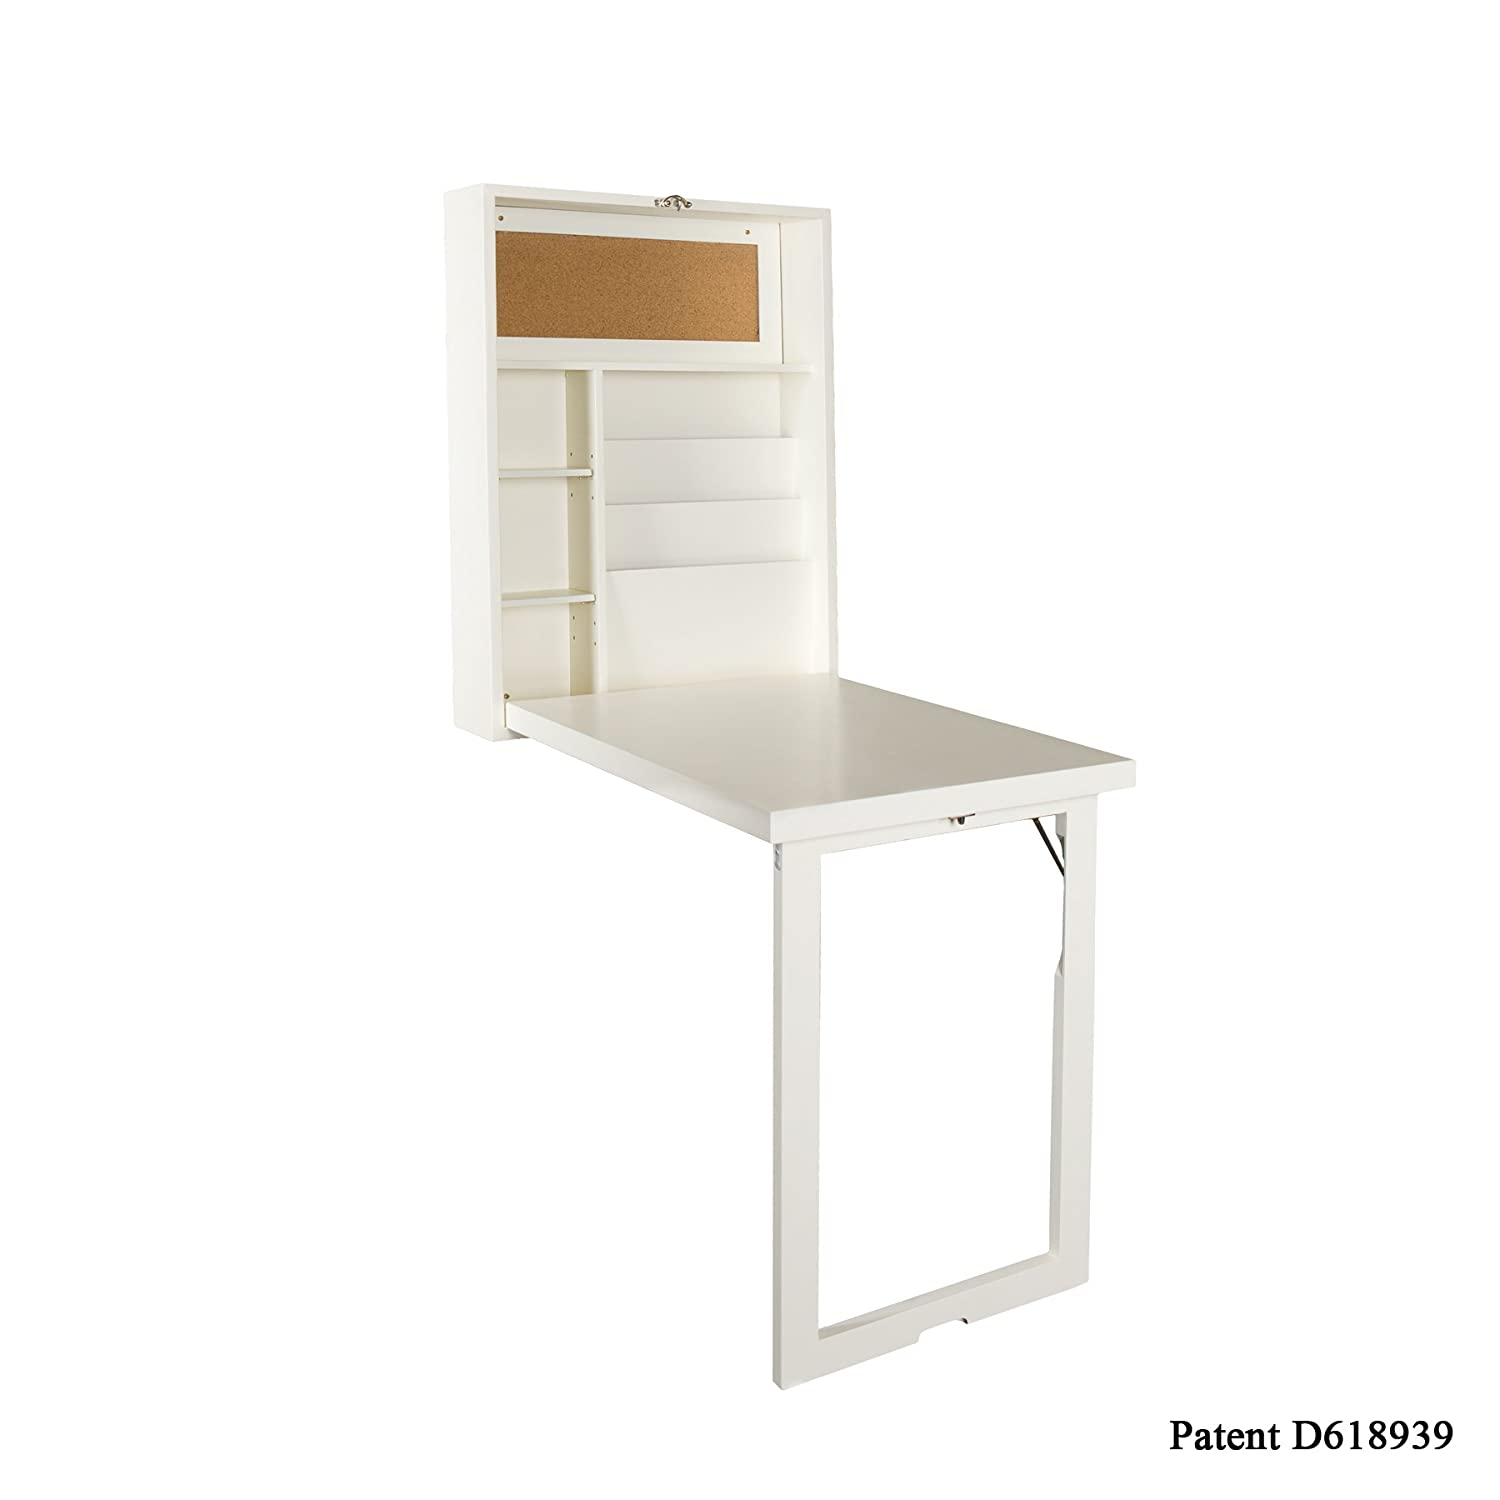 Fold out wall mount convertible desk white kitchen computer table space saver ebay - Convertible desks for small spaces ...